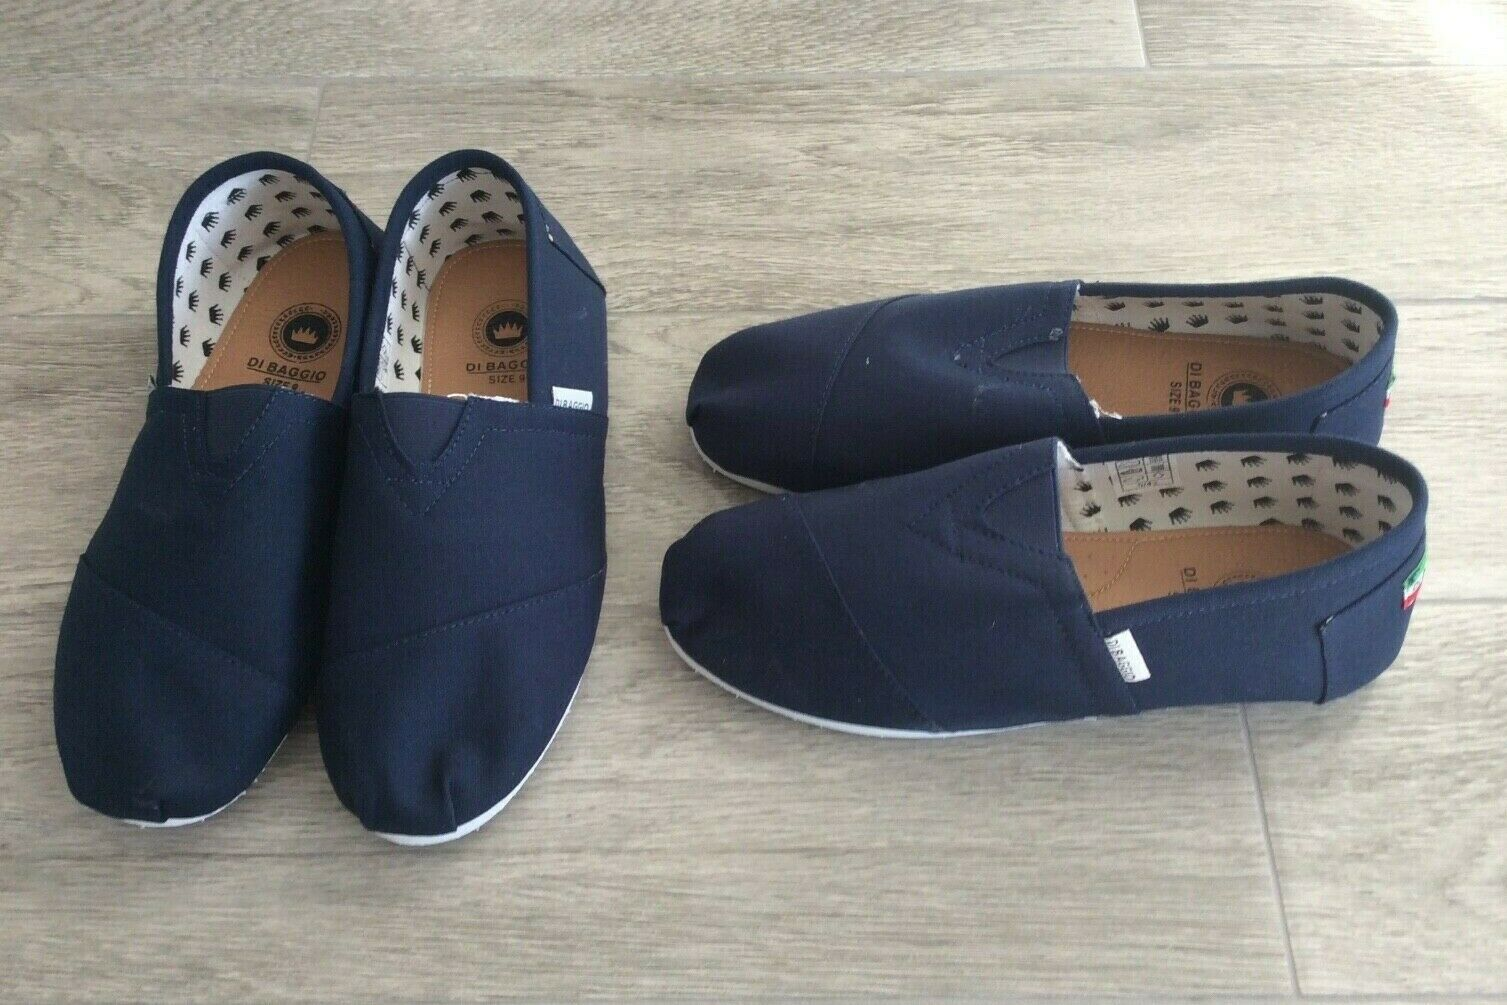 2 PAIRS OF MENS BAGGIO CANVAS PUMPS SLIGHT MARKS ON FRONT NAVY BLUE SIZE UK 8